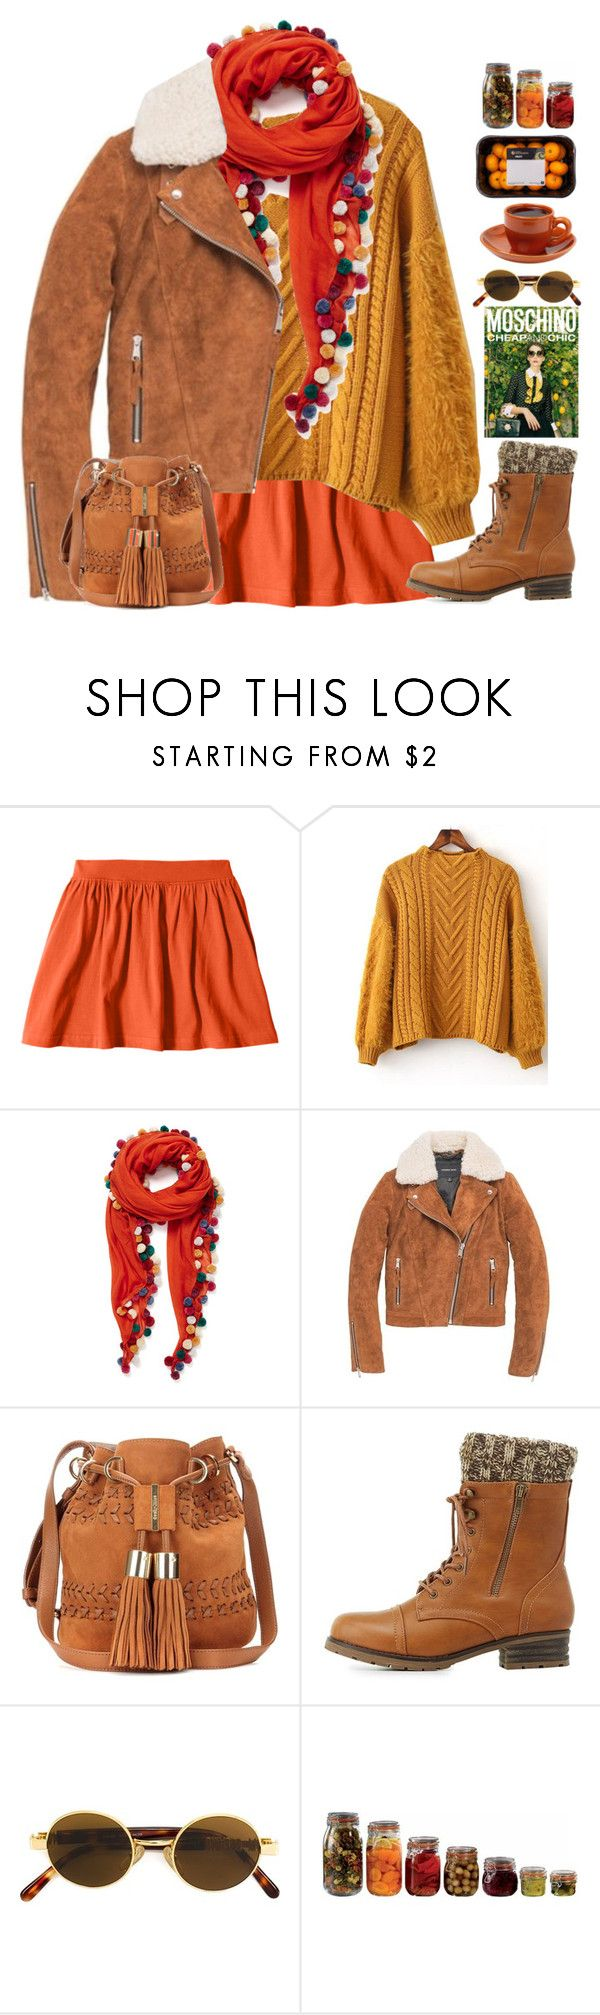 """""""Mandarin"""" by doga1 ❤ liked on Polyvore featuring Jane Carr, Andrew Marc, See by Chloé, Charlotte Russe, Moschino Cheap & Chic, Moschino and Artis"""